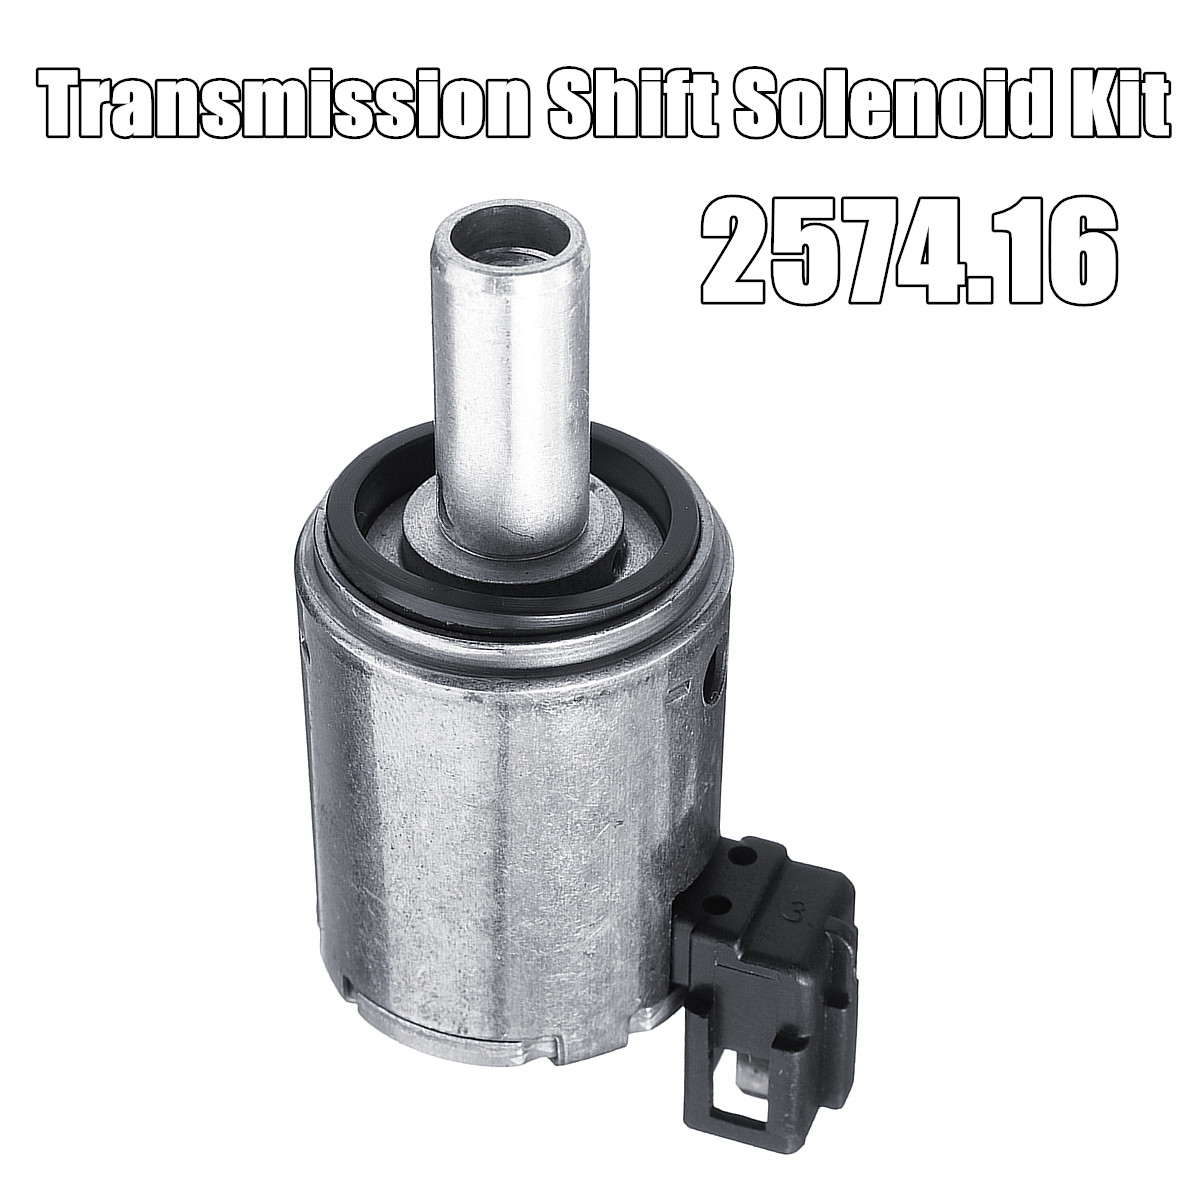 hight resolution of transmission shift solenoid valve 2574 16 for citroen peugeot renault al4 dpo 36x26x59mm solenoid kit auto replacement parts best seller july 2019